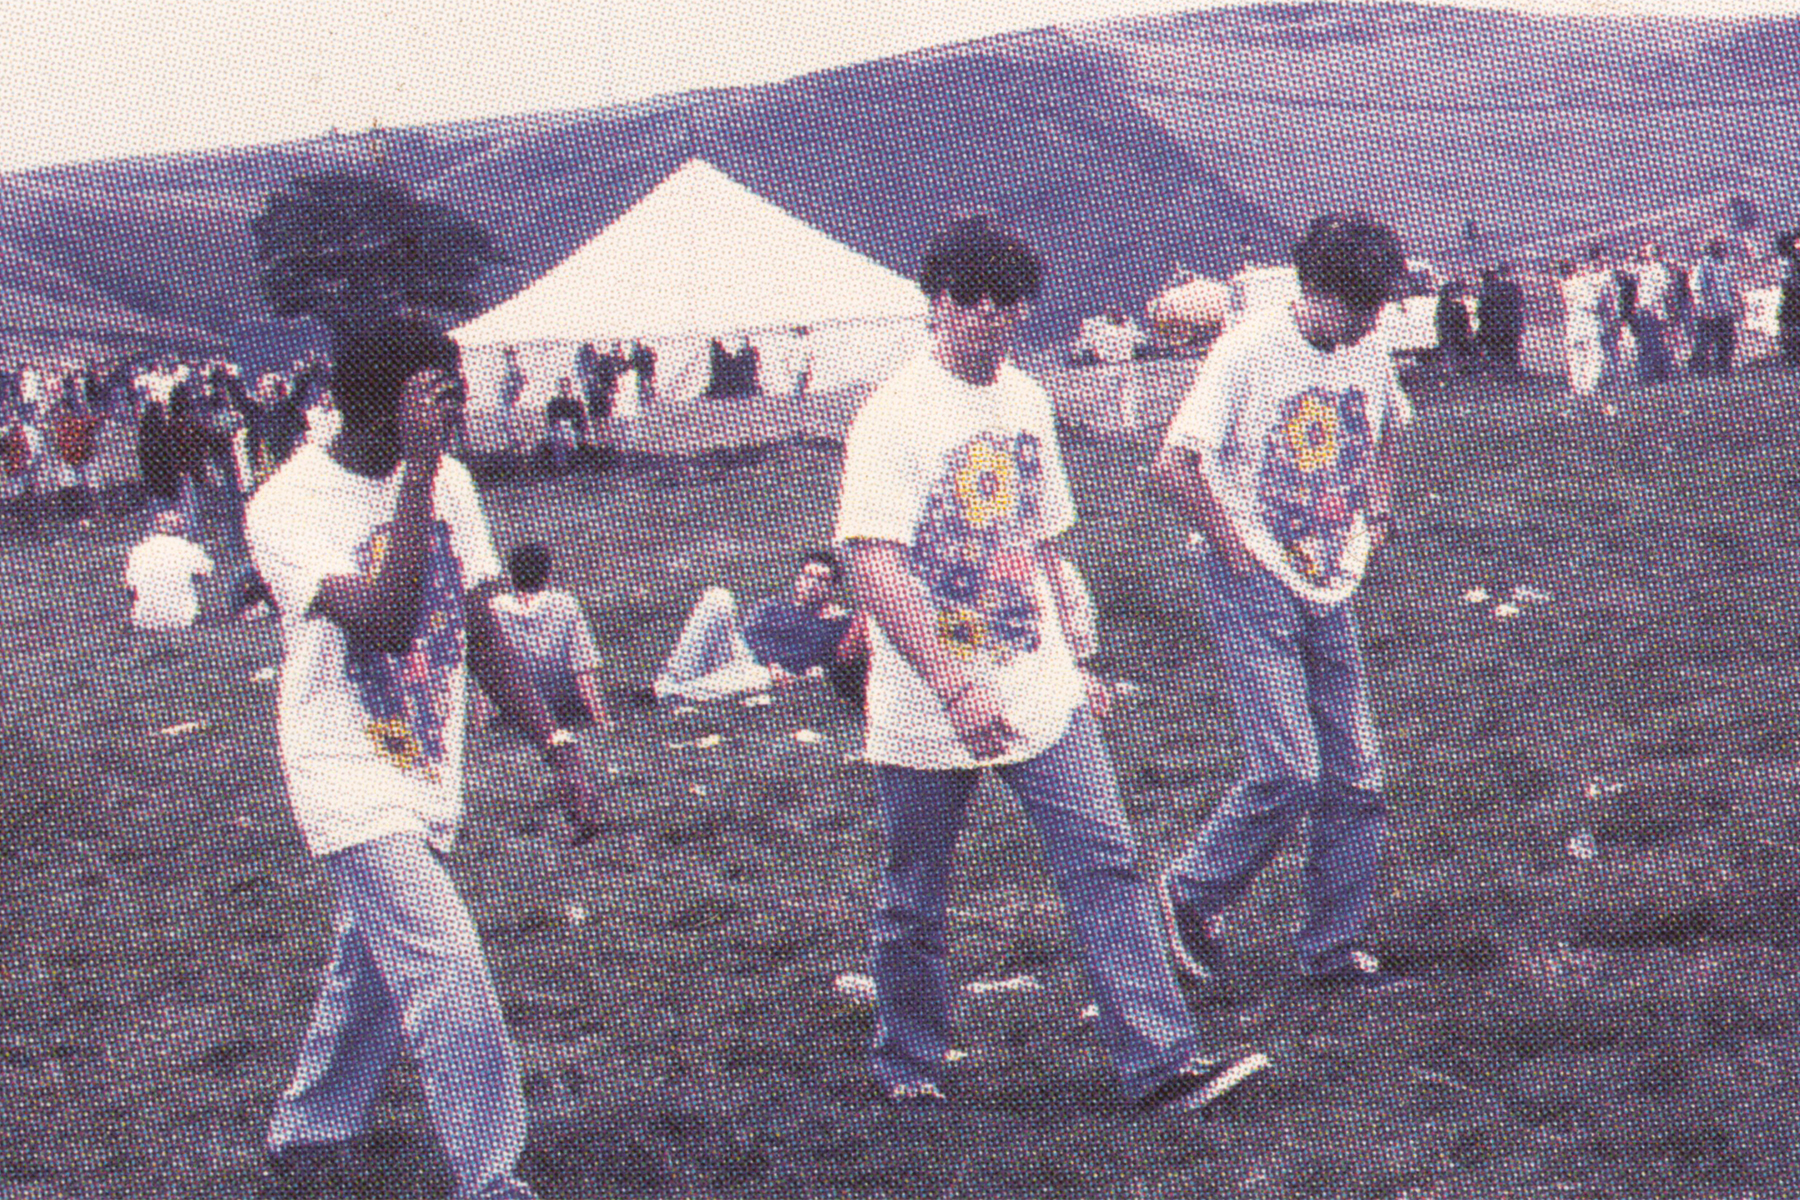 A brief history of acid house